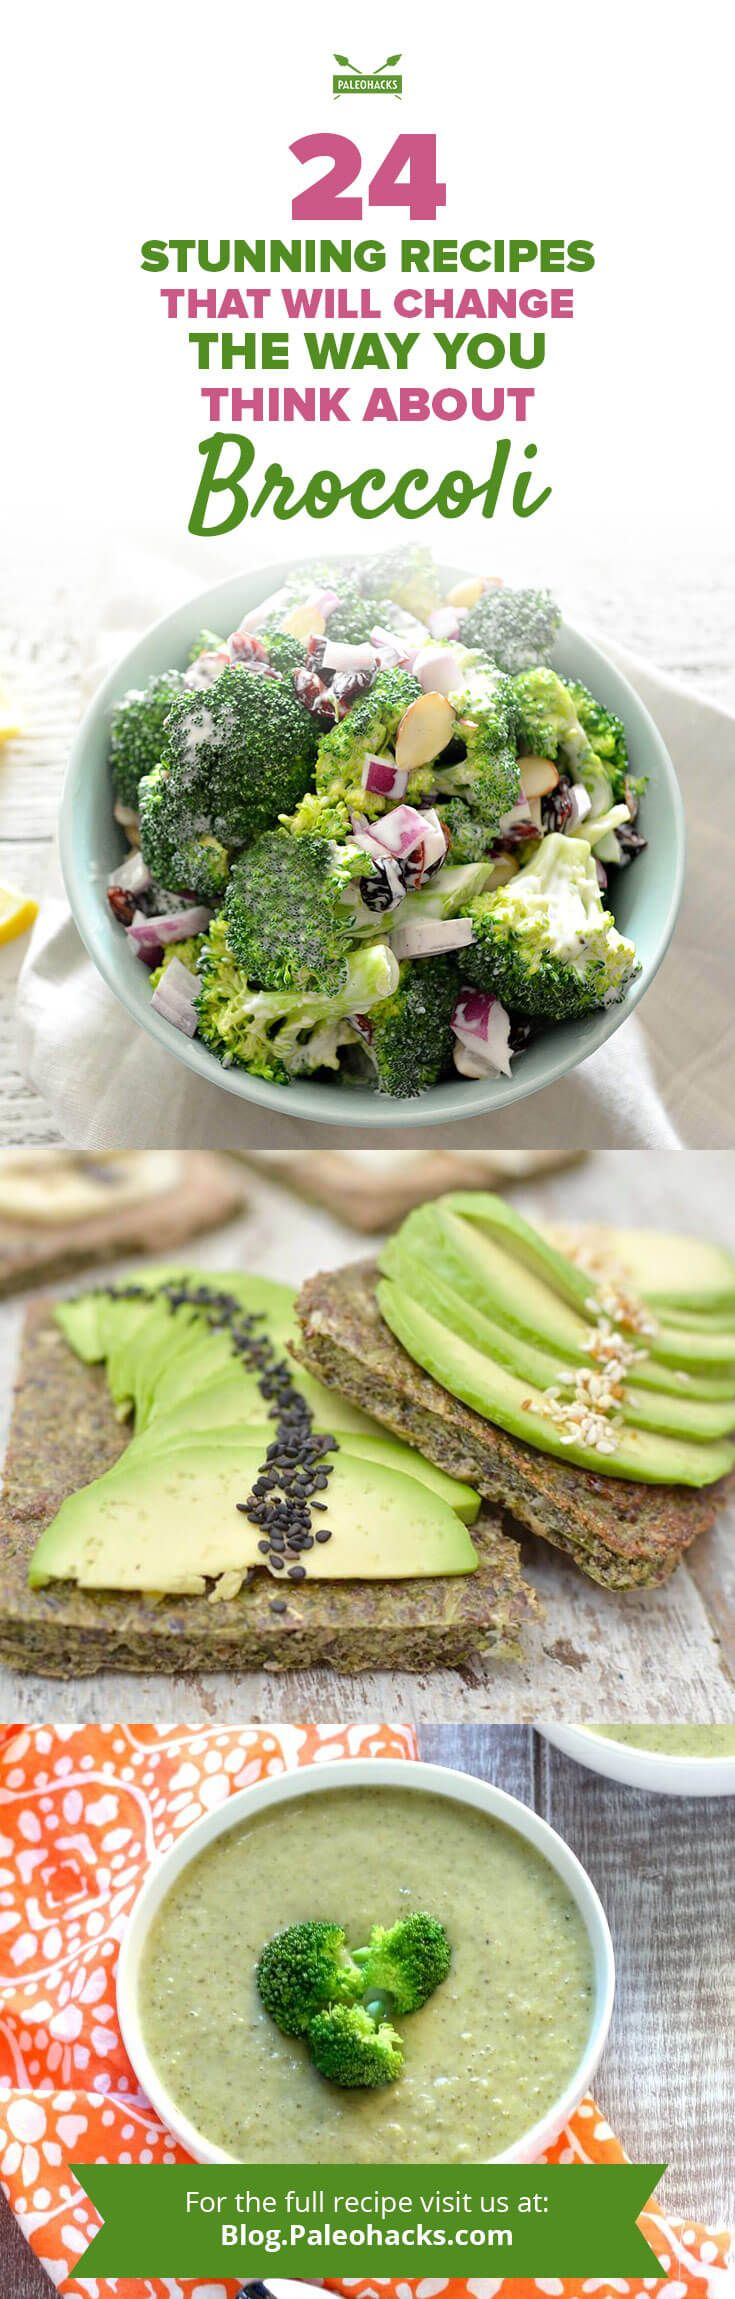 From brilliant broccoli recipes packed with simplicity, to perfect pairings with sweet potatoes, to scrumptious salads, it seems there's nothing broccoli can't achieve. Get all recipes here: http://paleo.co/broccolircp